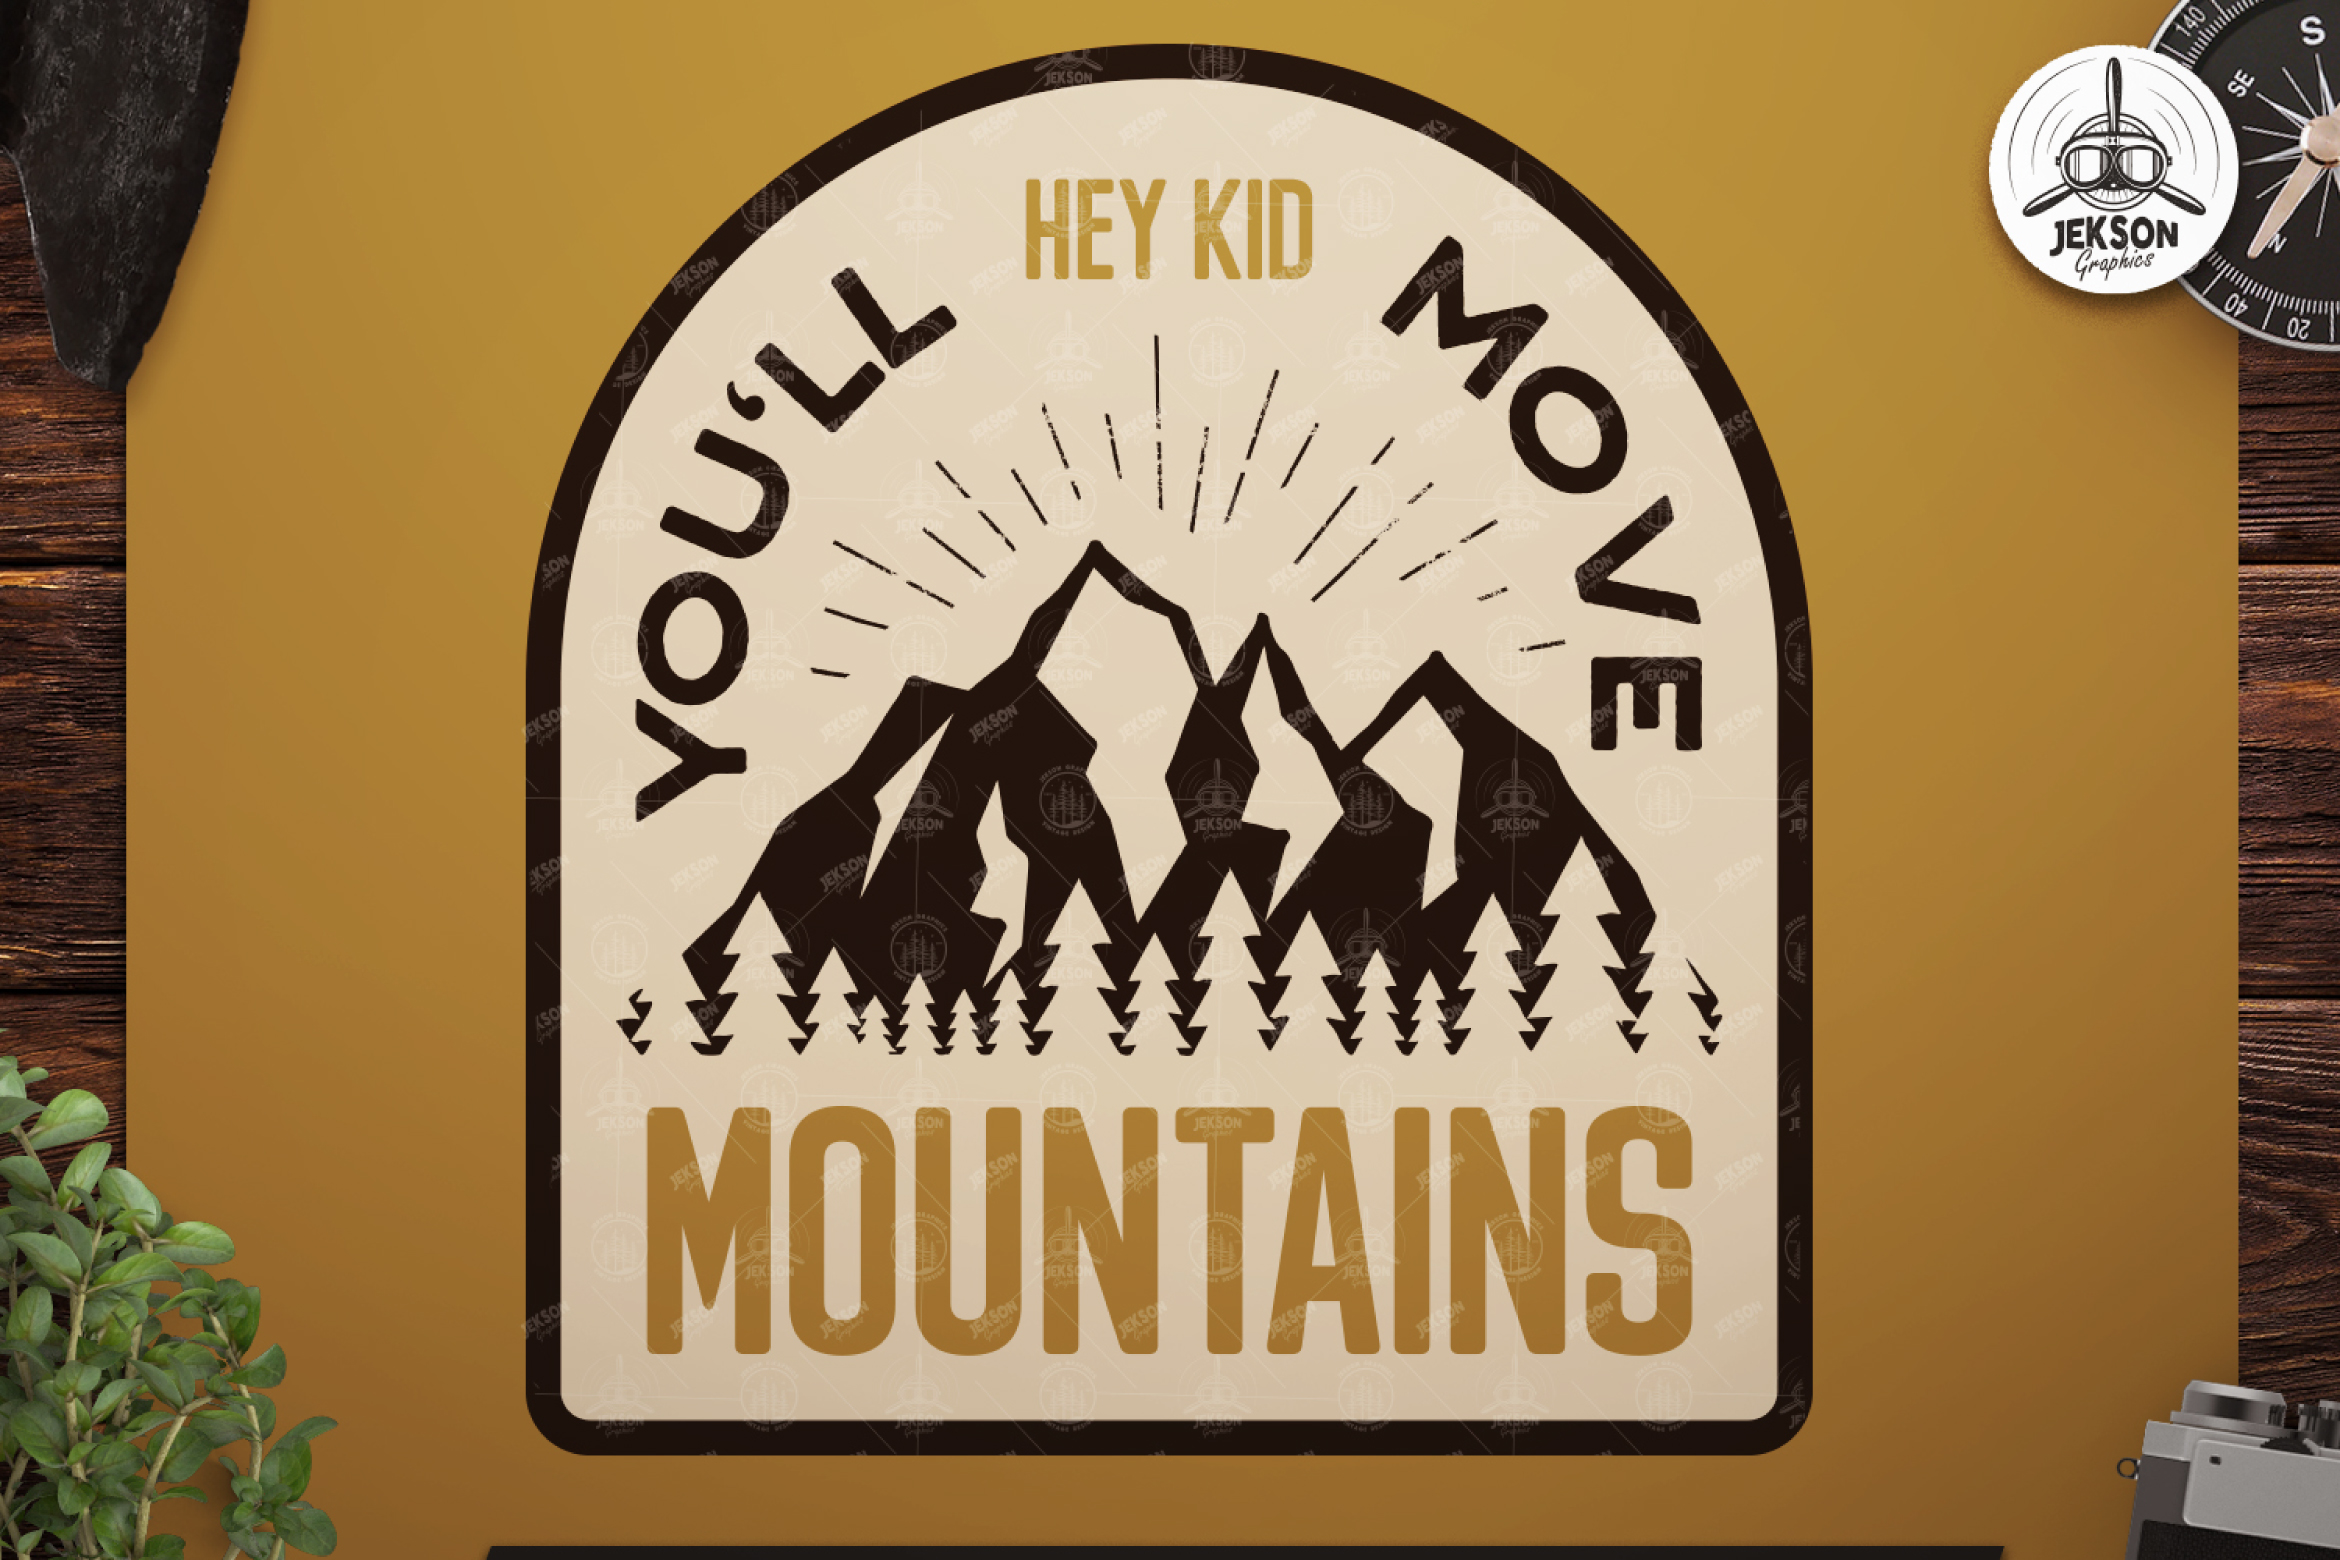 Retro Mountains Adventure Badge / Vintage Travel Logo Patch example image 1